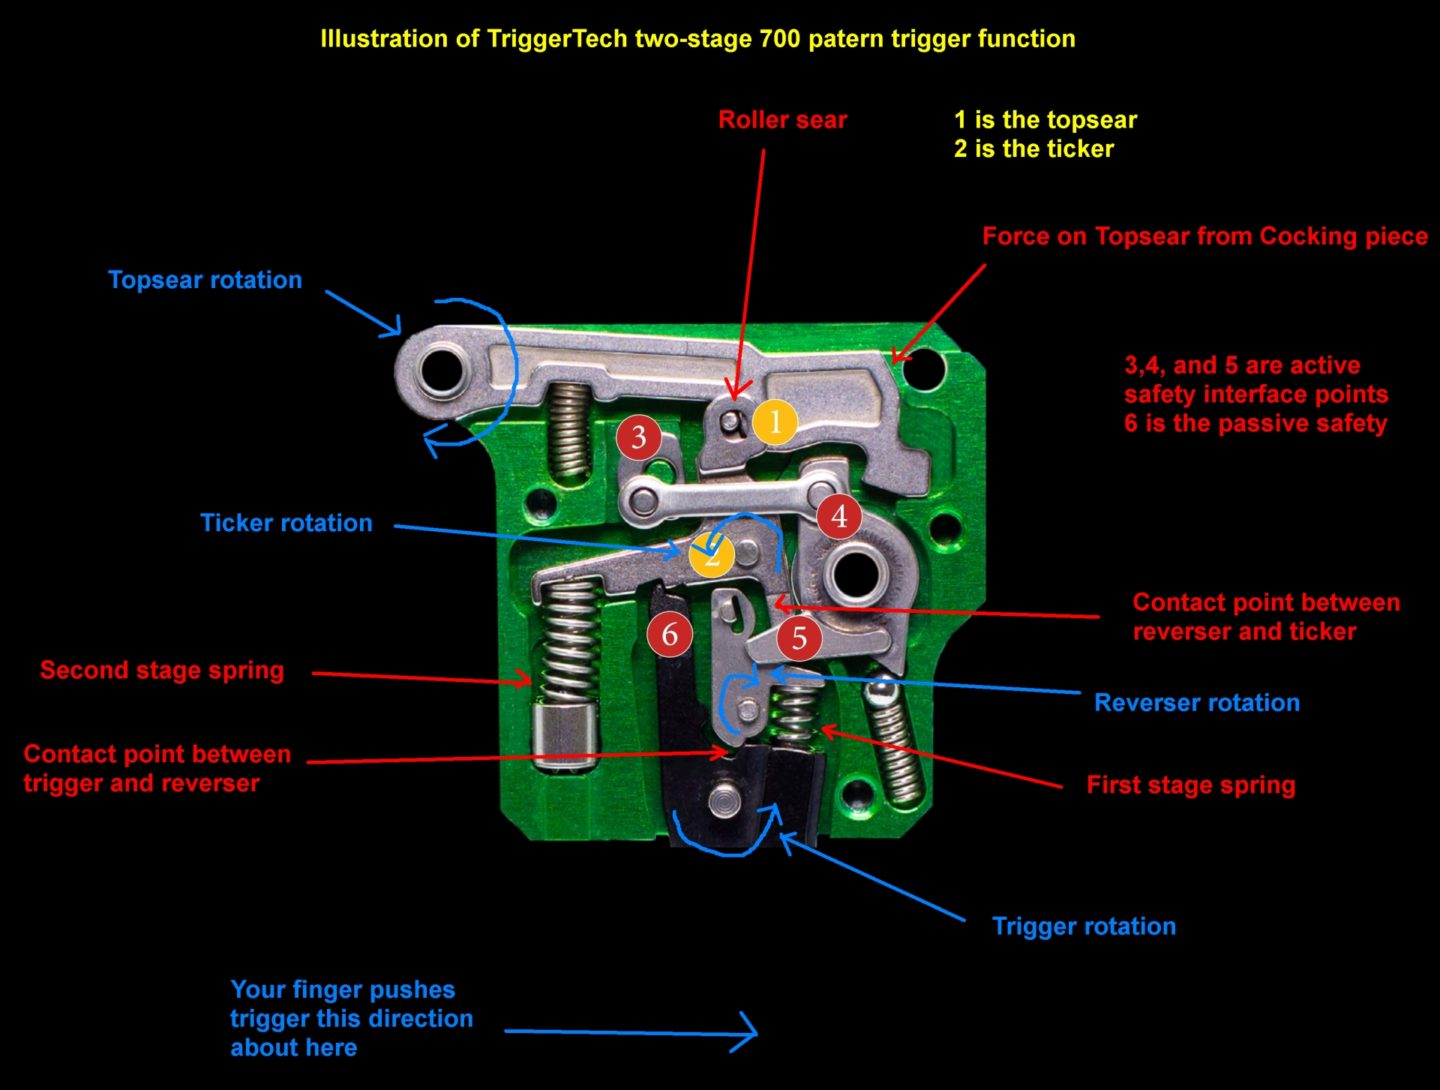 Illustrated diagram of the TriggerTech two-stage 700 platform trigger function.